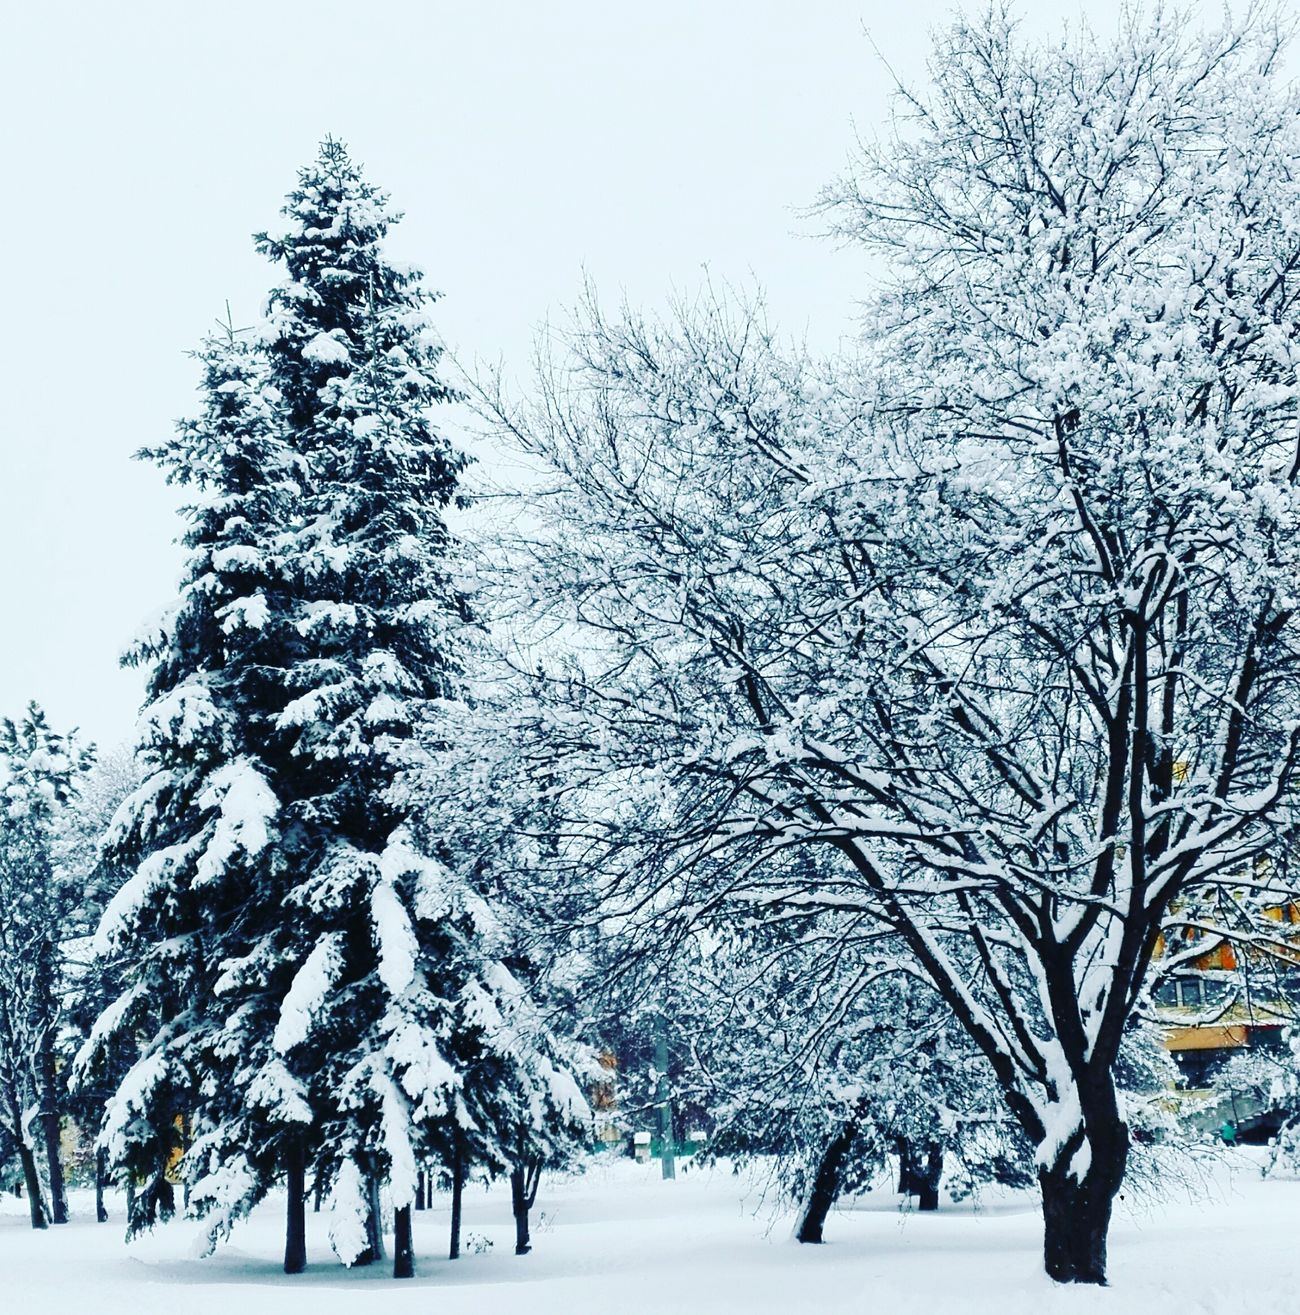 Winter Wonderland ❄ Looks like a Postcard 😊 Winter Wintertime Winter Trees Cold Temperature Snow Outdoors Nature Beauty In Nature White No People Tranquility Peaceful Moment Naturephotography Weather Pinetree